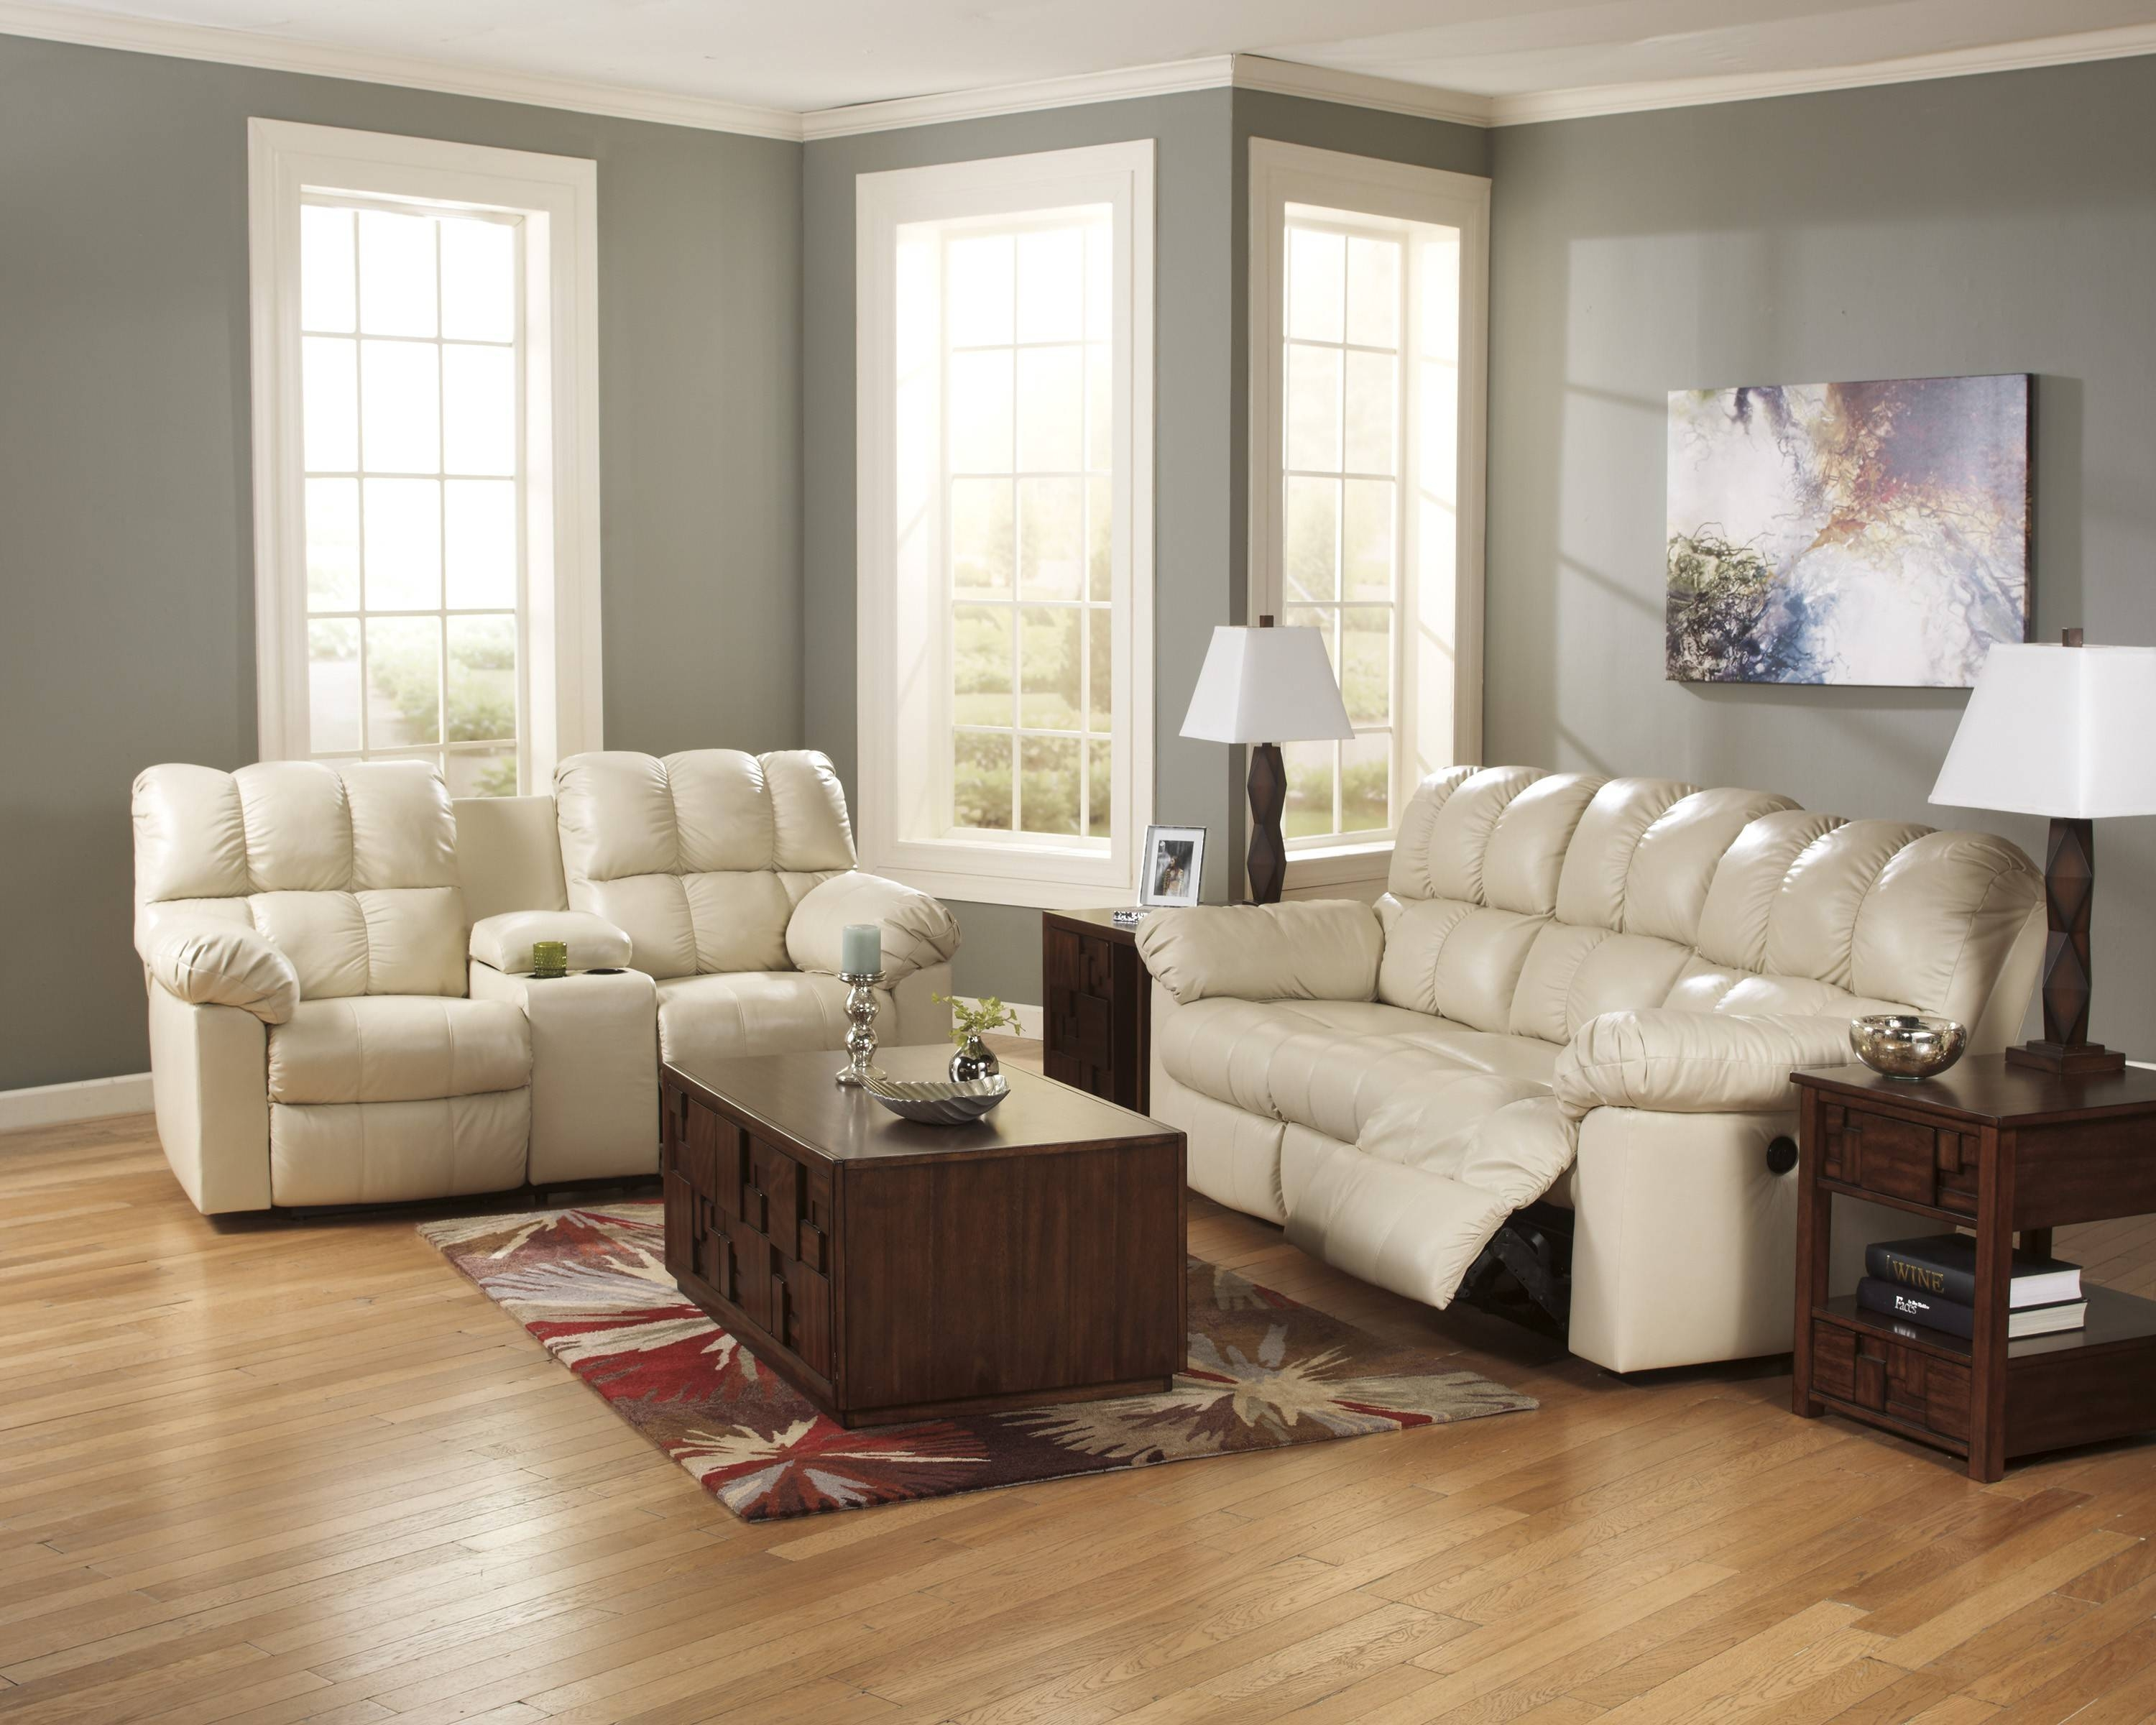 Decor Cream Colored Leather Sofa With Buy Leather Couch (Cream with regard to Cream Colored Sofa (Image 9 of 25)